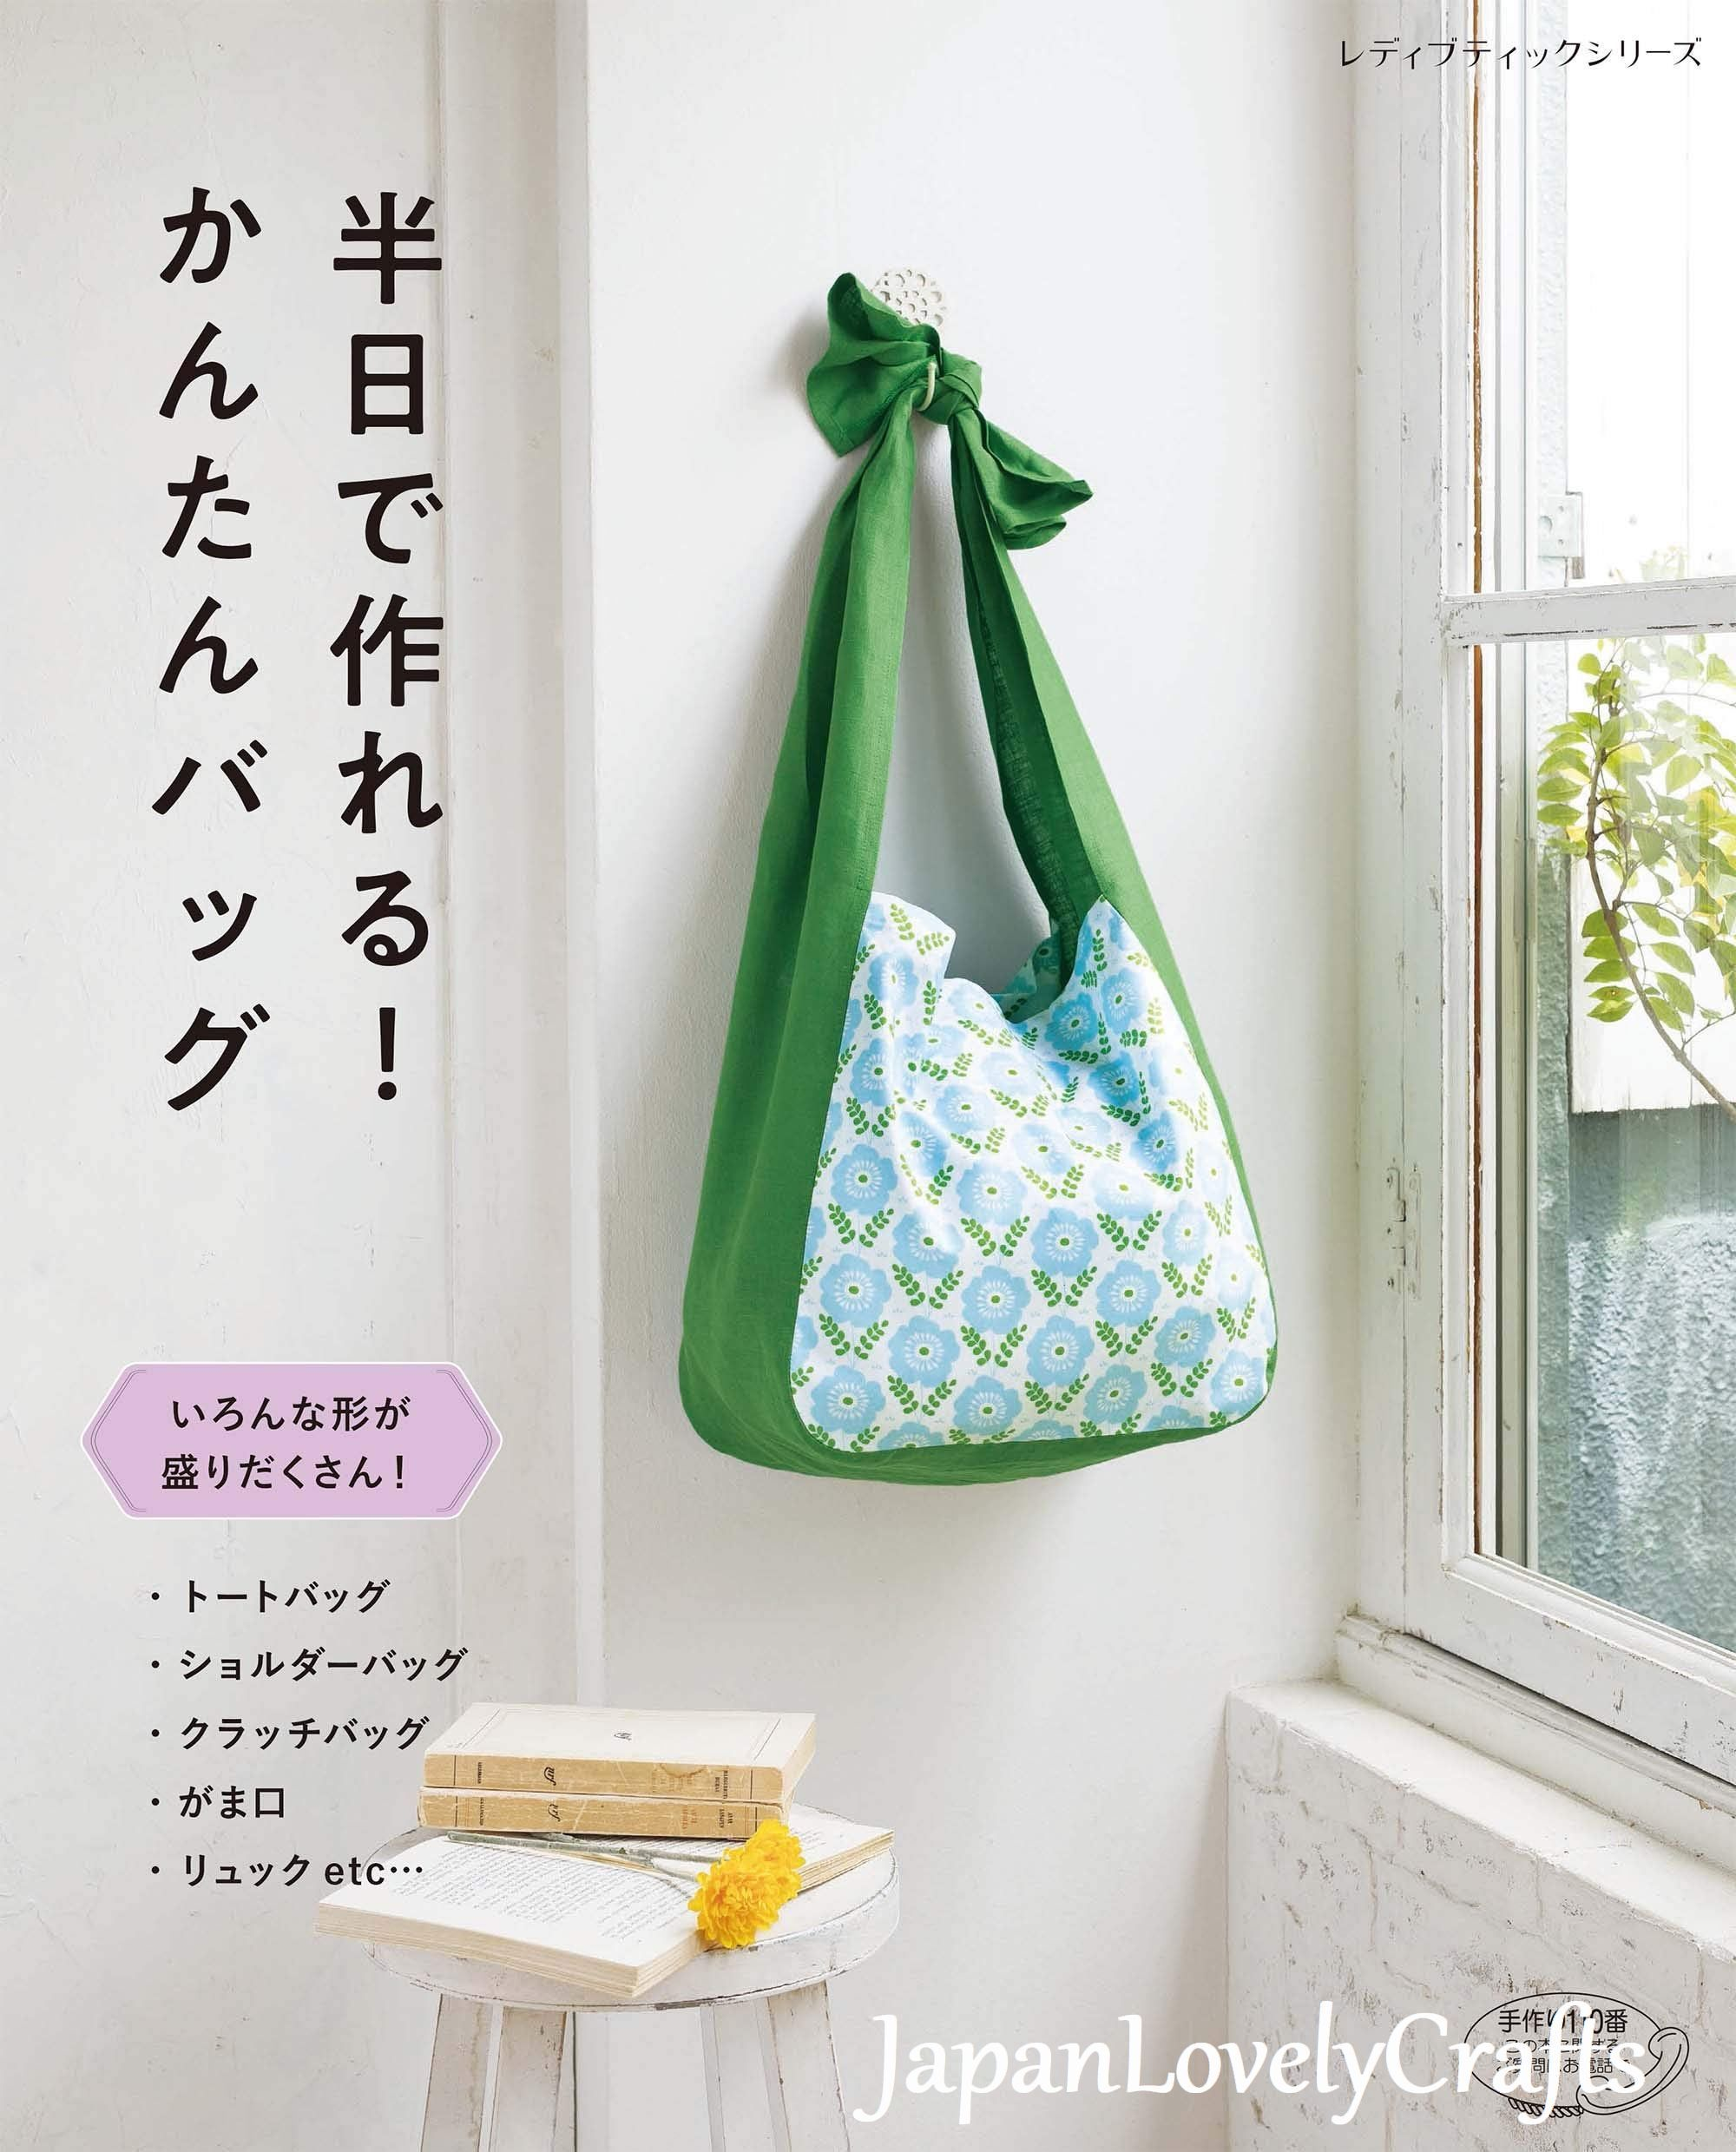 Easy Casual Simple Bag Patterns Japanese Sewing Pattern Book For Daily Bags Japanese Style Tote Bag Pattern Handmade Bag Gift Ideas Sew Sewing Sewingpatte